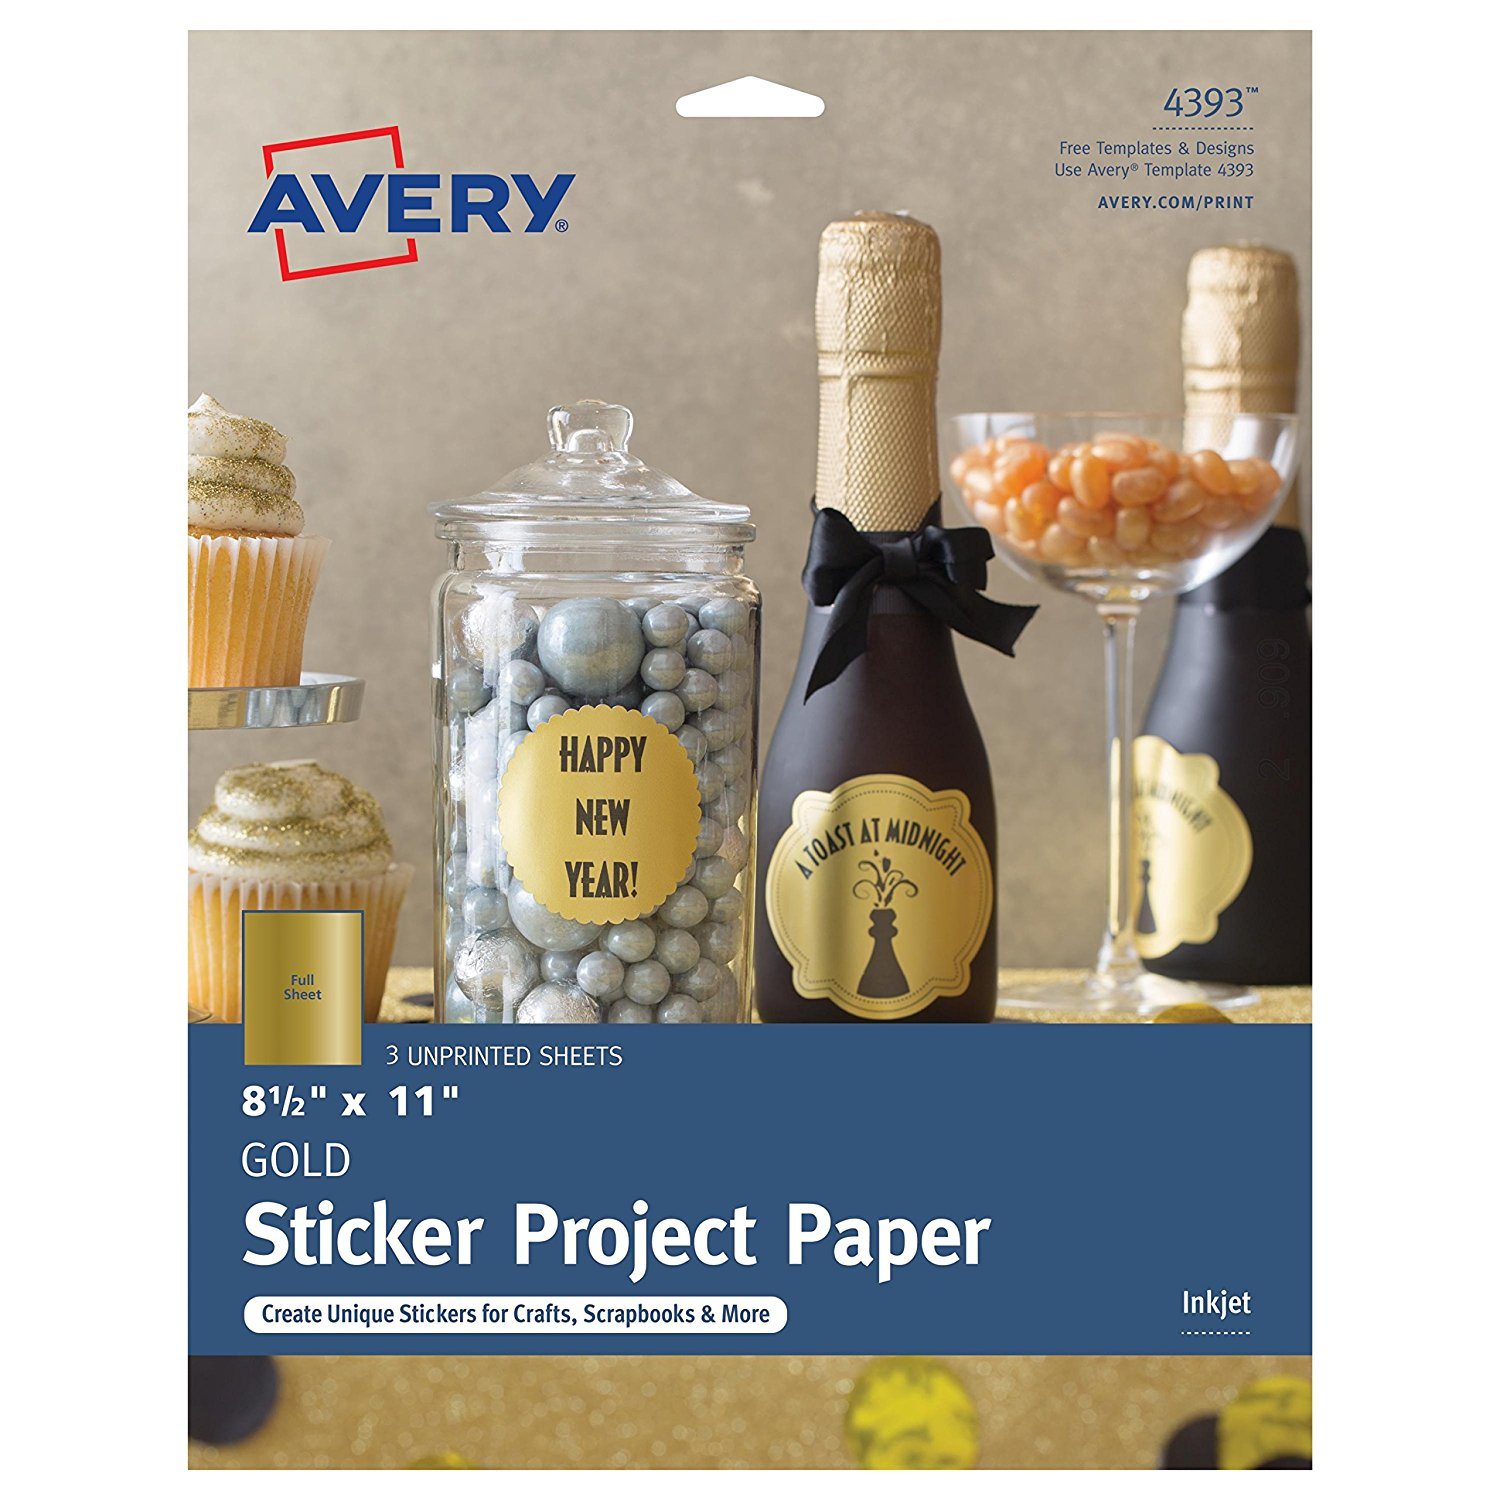 Avery Sticker Templates